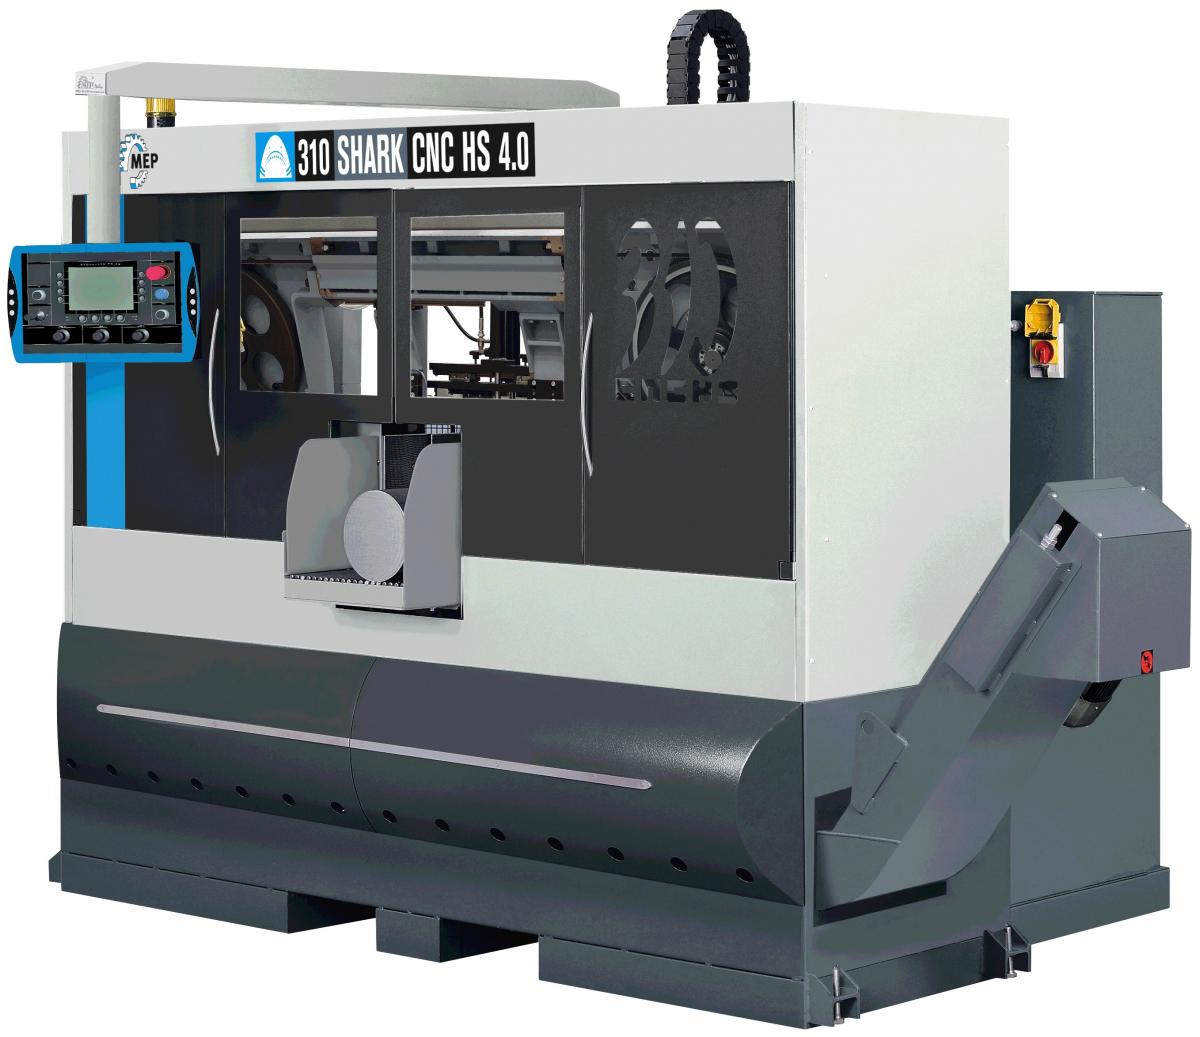 Sierra doble MEP SHARK 310 CNC HS 4.0